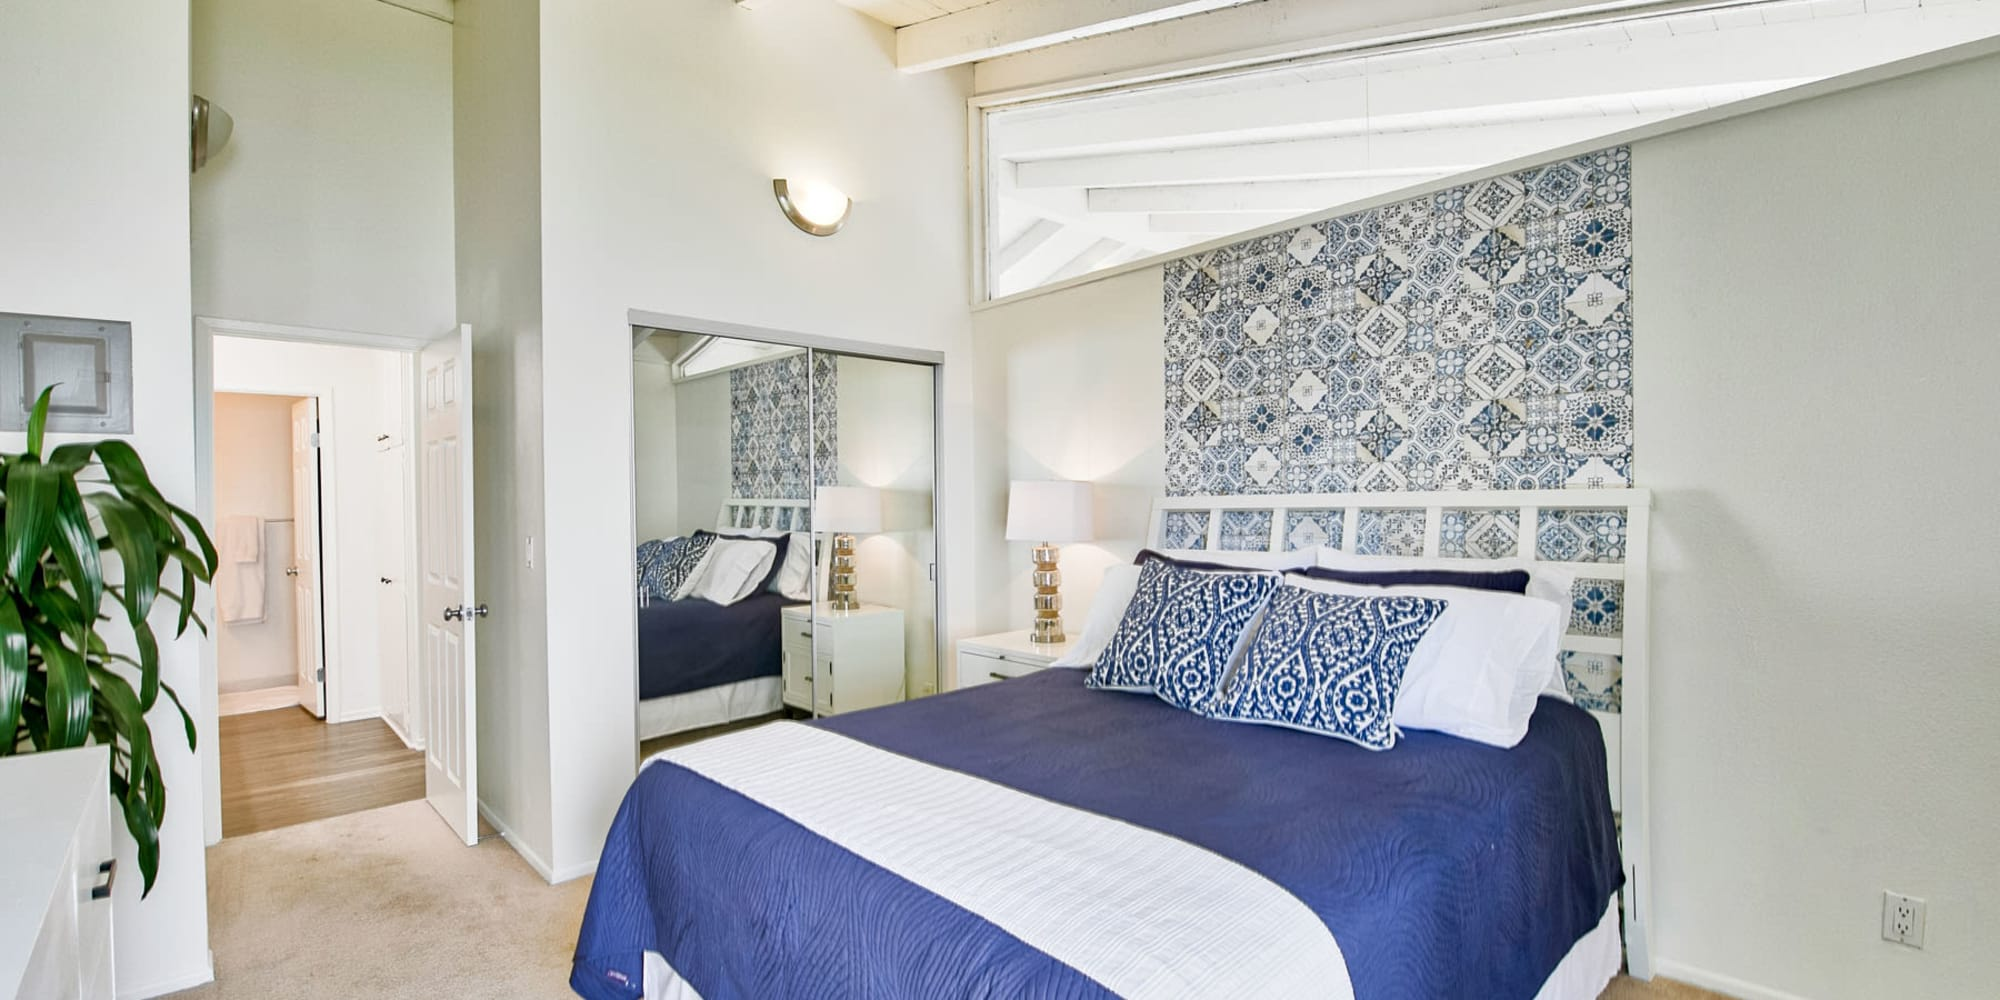 Plush carpeting and modern furnishings in a model home's bedroom at Mediterranean Village Apartments in Costa Mesa, California